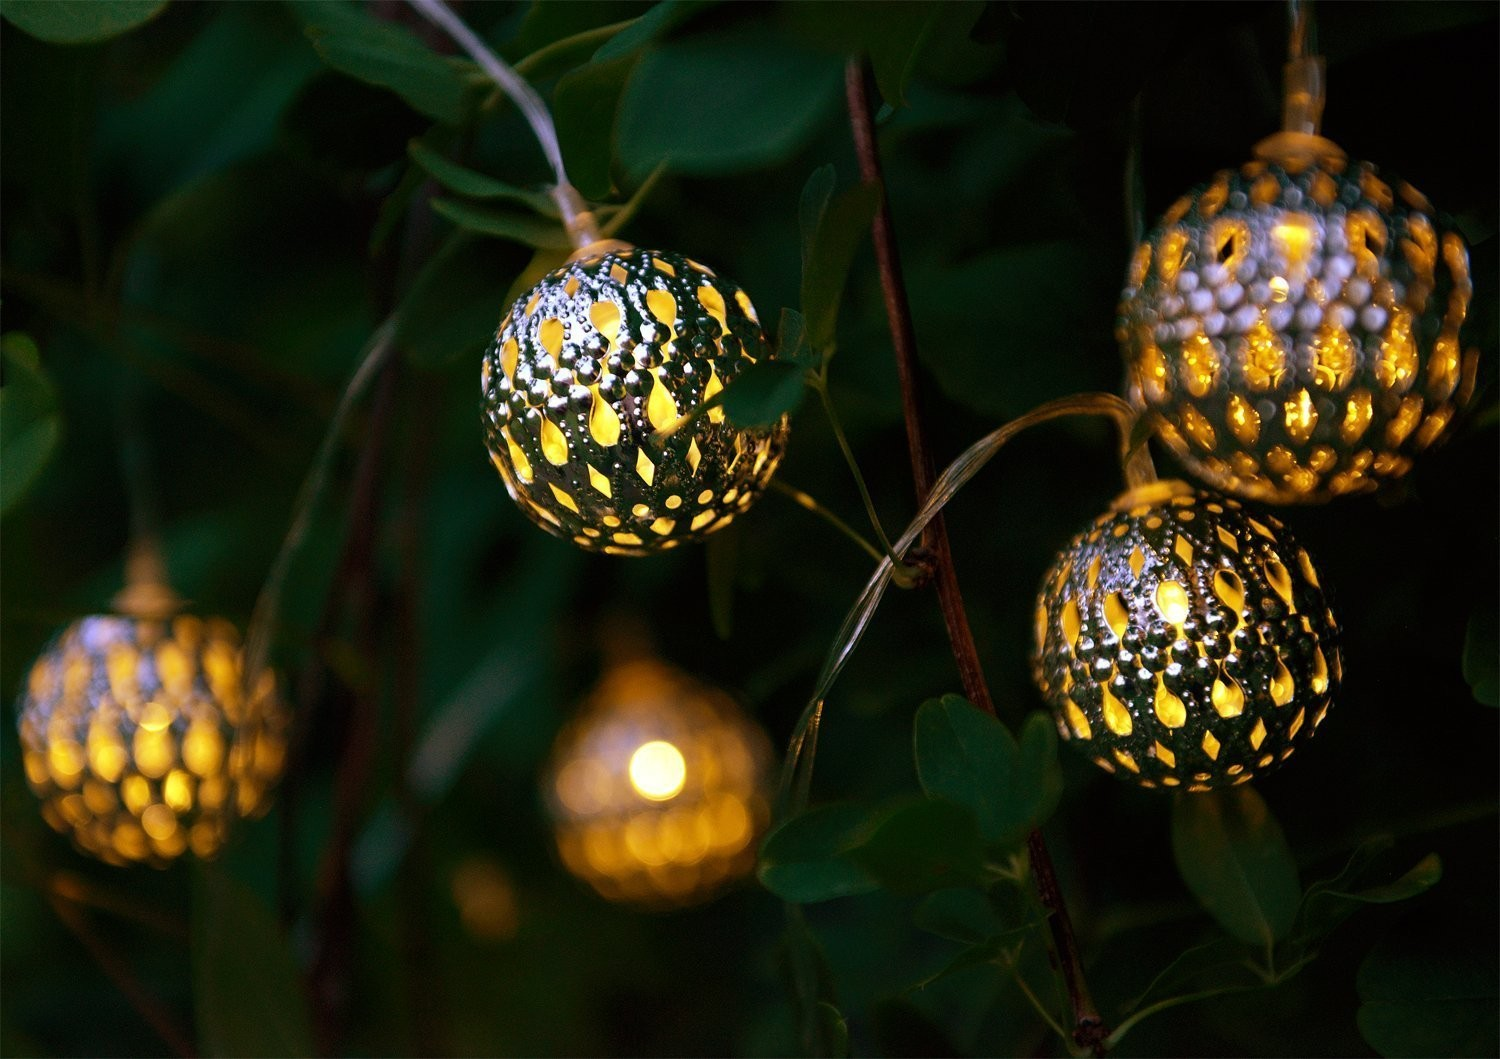 Exterior Solar String Lights : Set of 12 Moroccan Solar String Lights - Balls - Auraglow LED Lighting